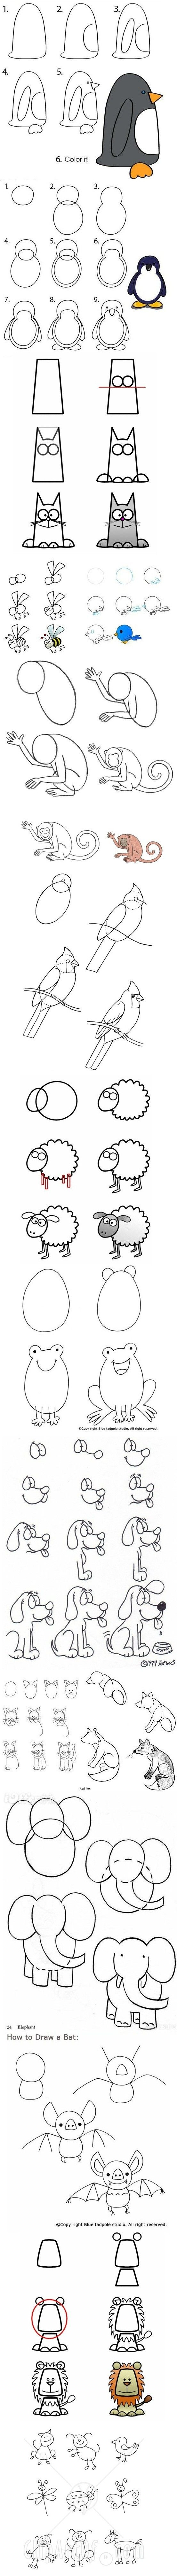 How to draw animals.Drawing Tutorials, Cute Animal, Draw Animals, To Drawing, Drawing Animals, For Kids, Animal Drawing, How To Draw, Easy Drawing